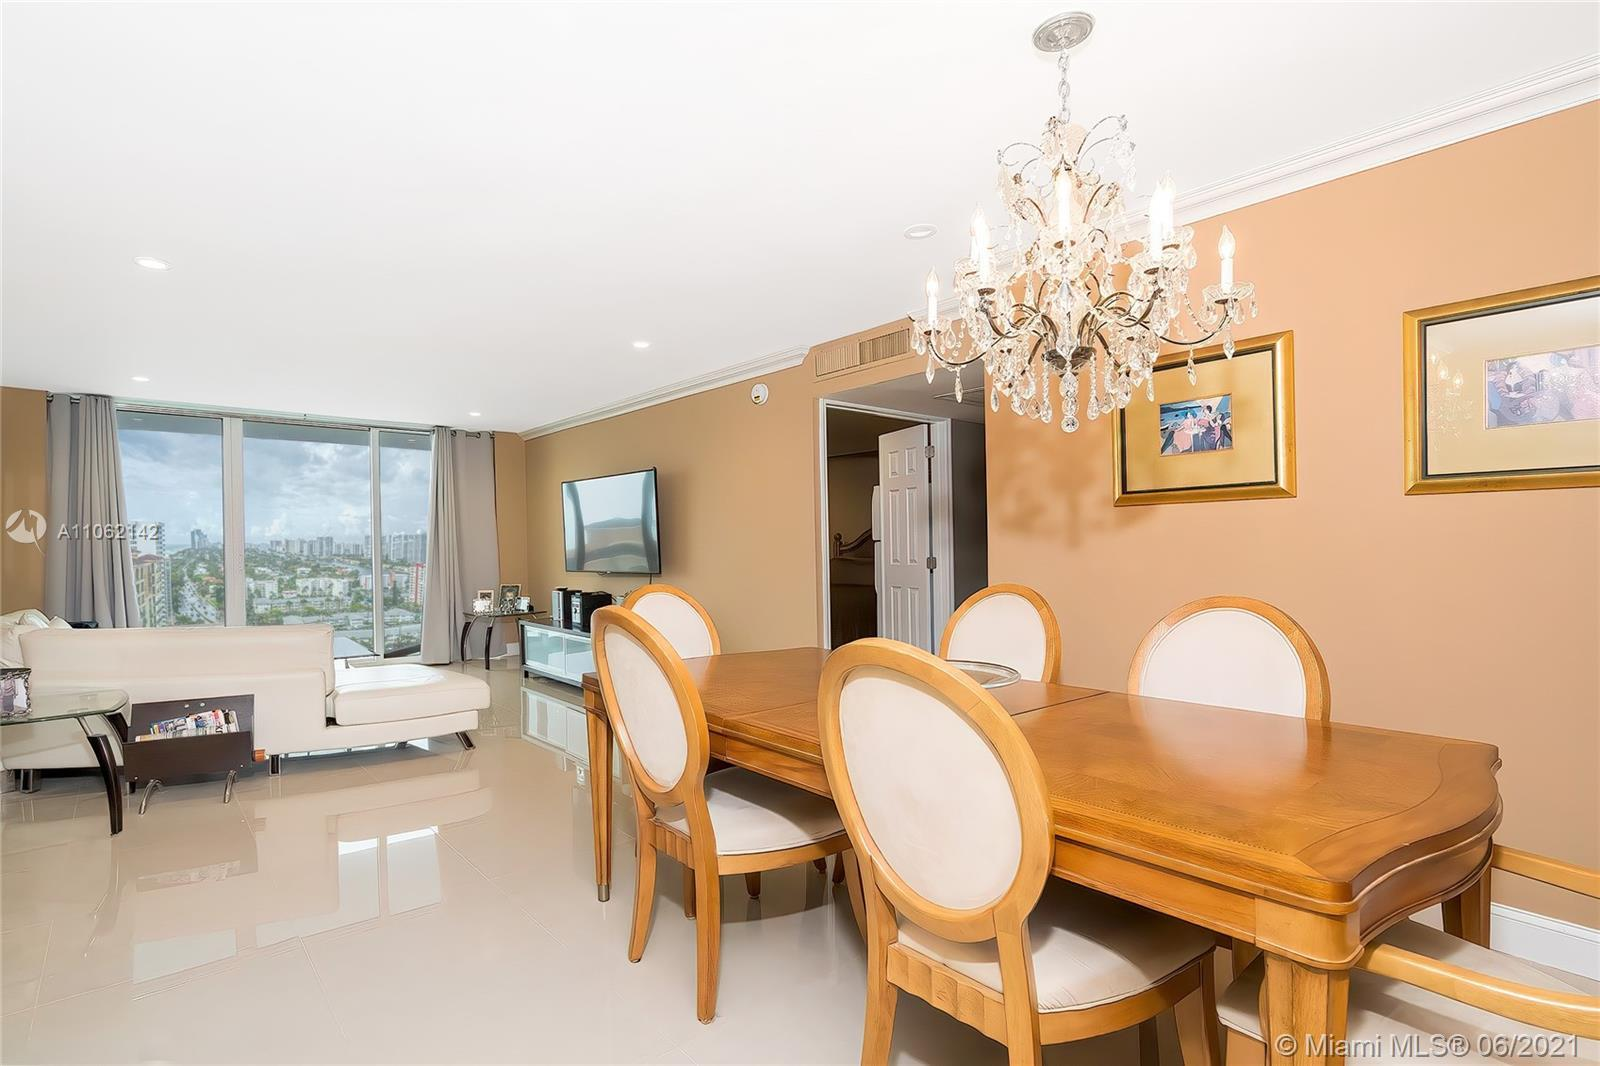 What an amazing view from the turn key renovated 2/2 oceanfront penthouse in full service luxury Par